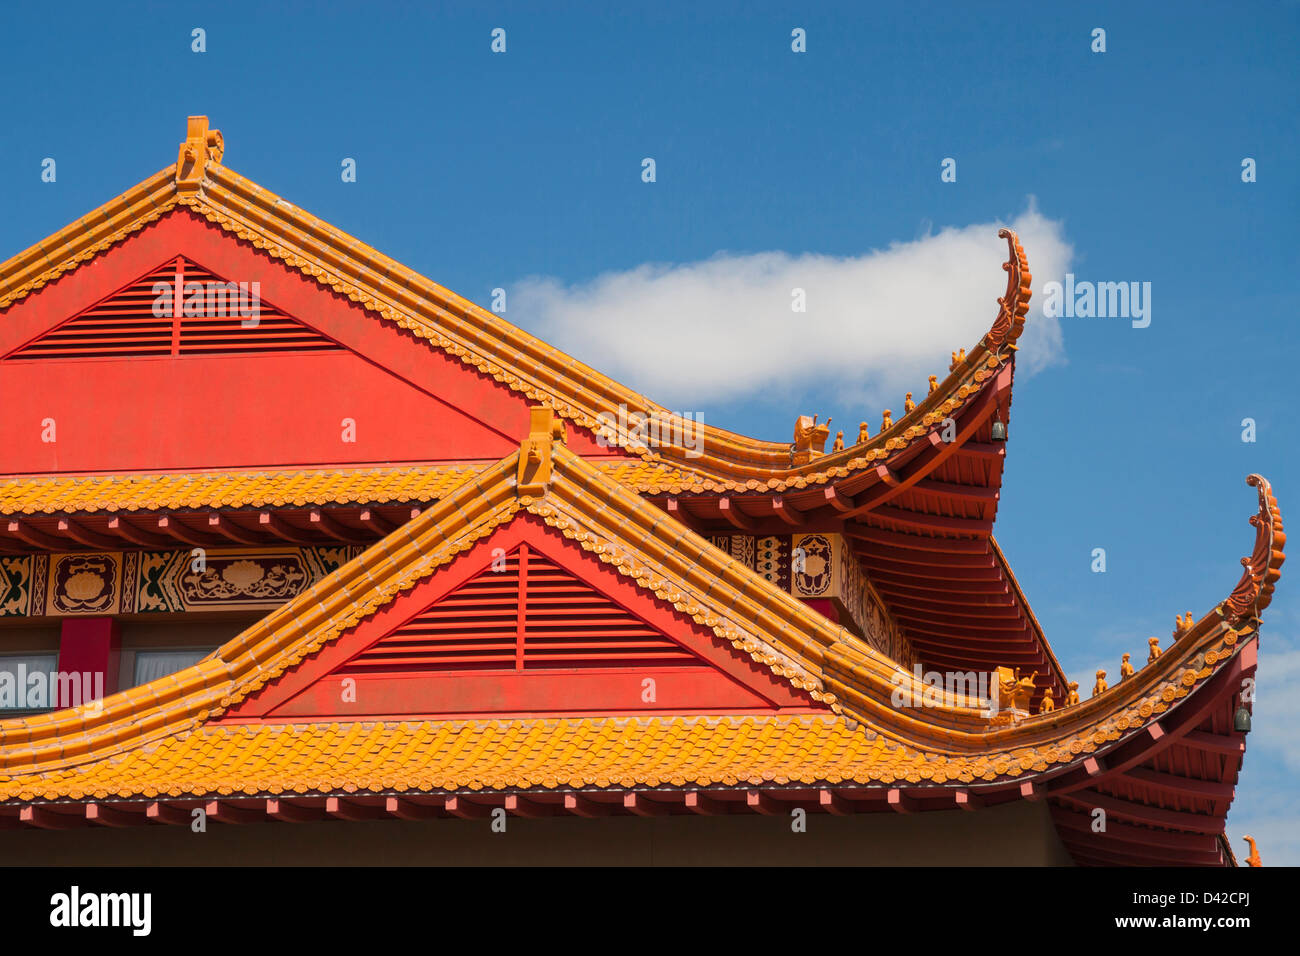 roof and architectural details of buddhist temple stock photo